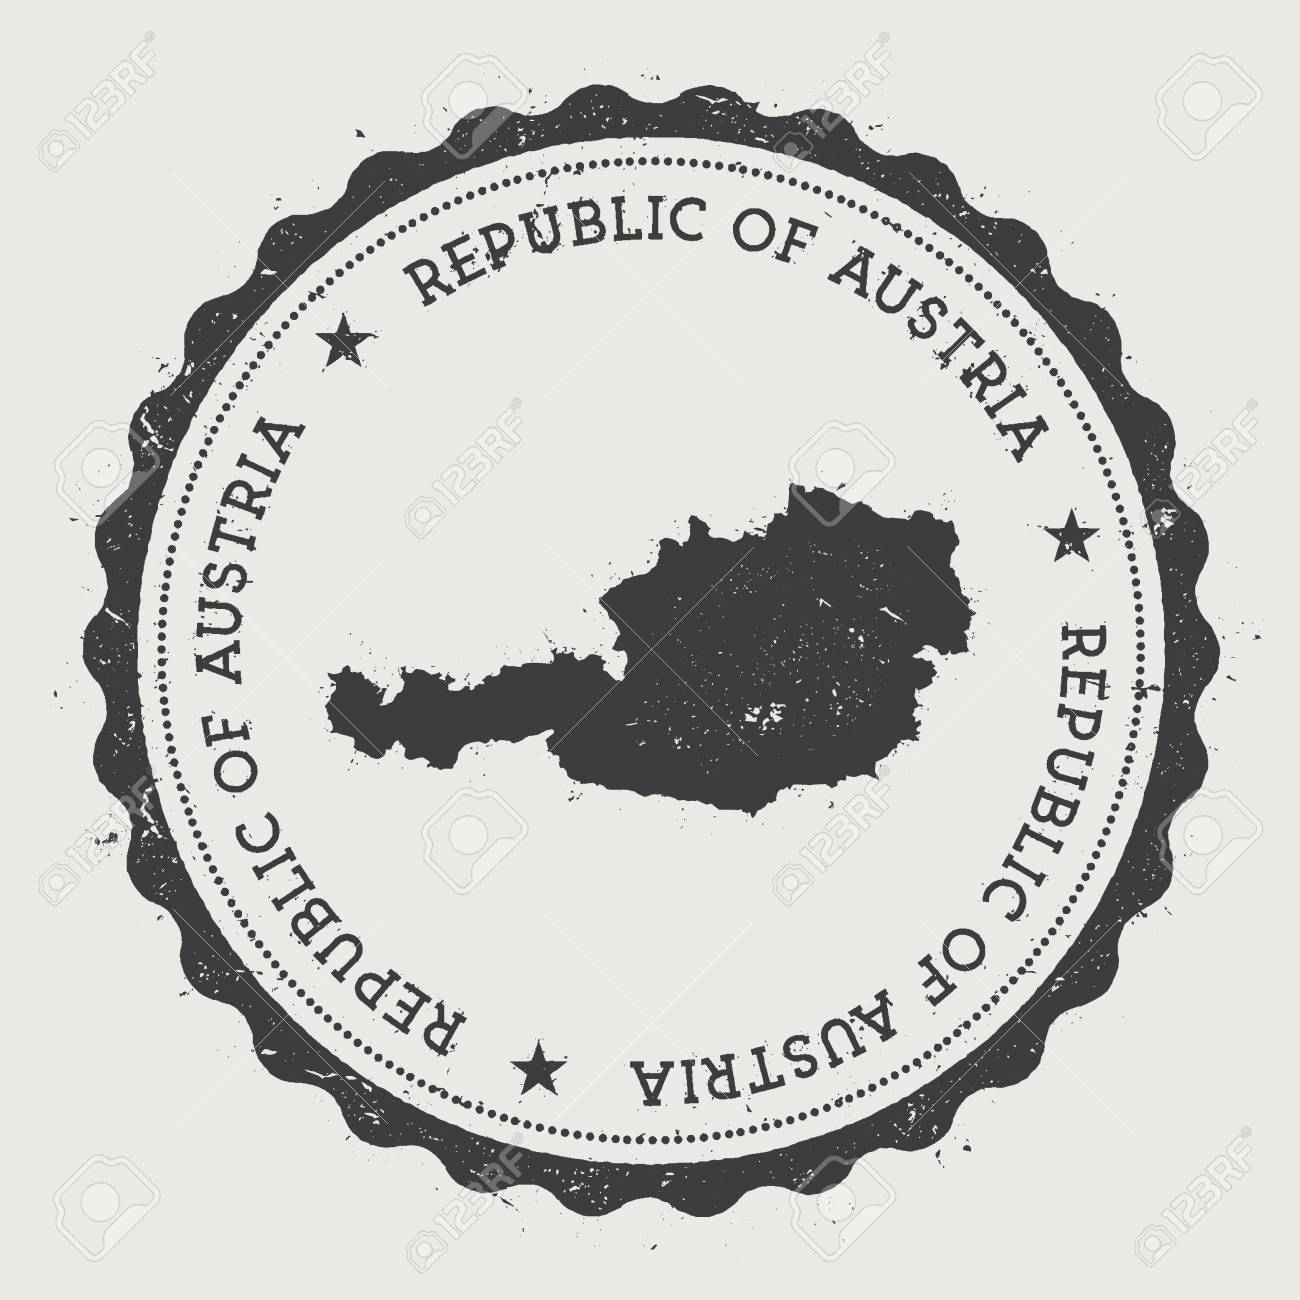 Austria Hipster Round Rubber Stamp With Country Map Vintage Passport Circular Text And